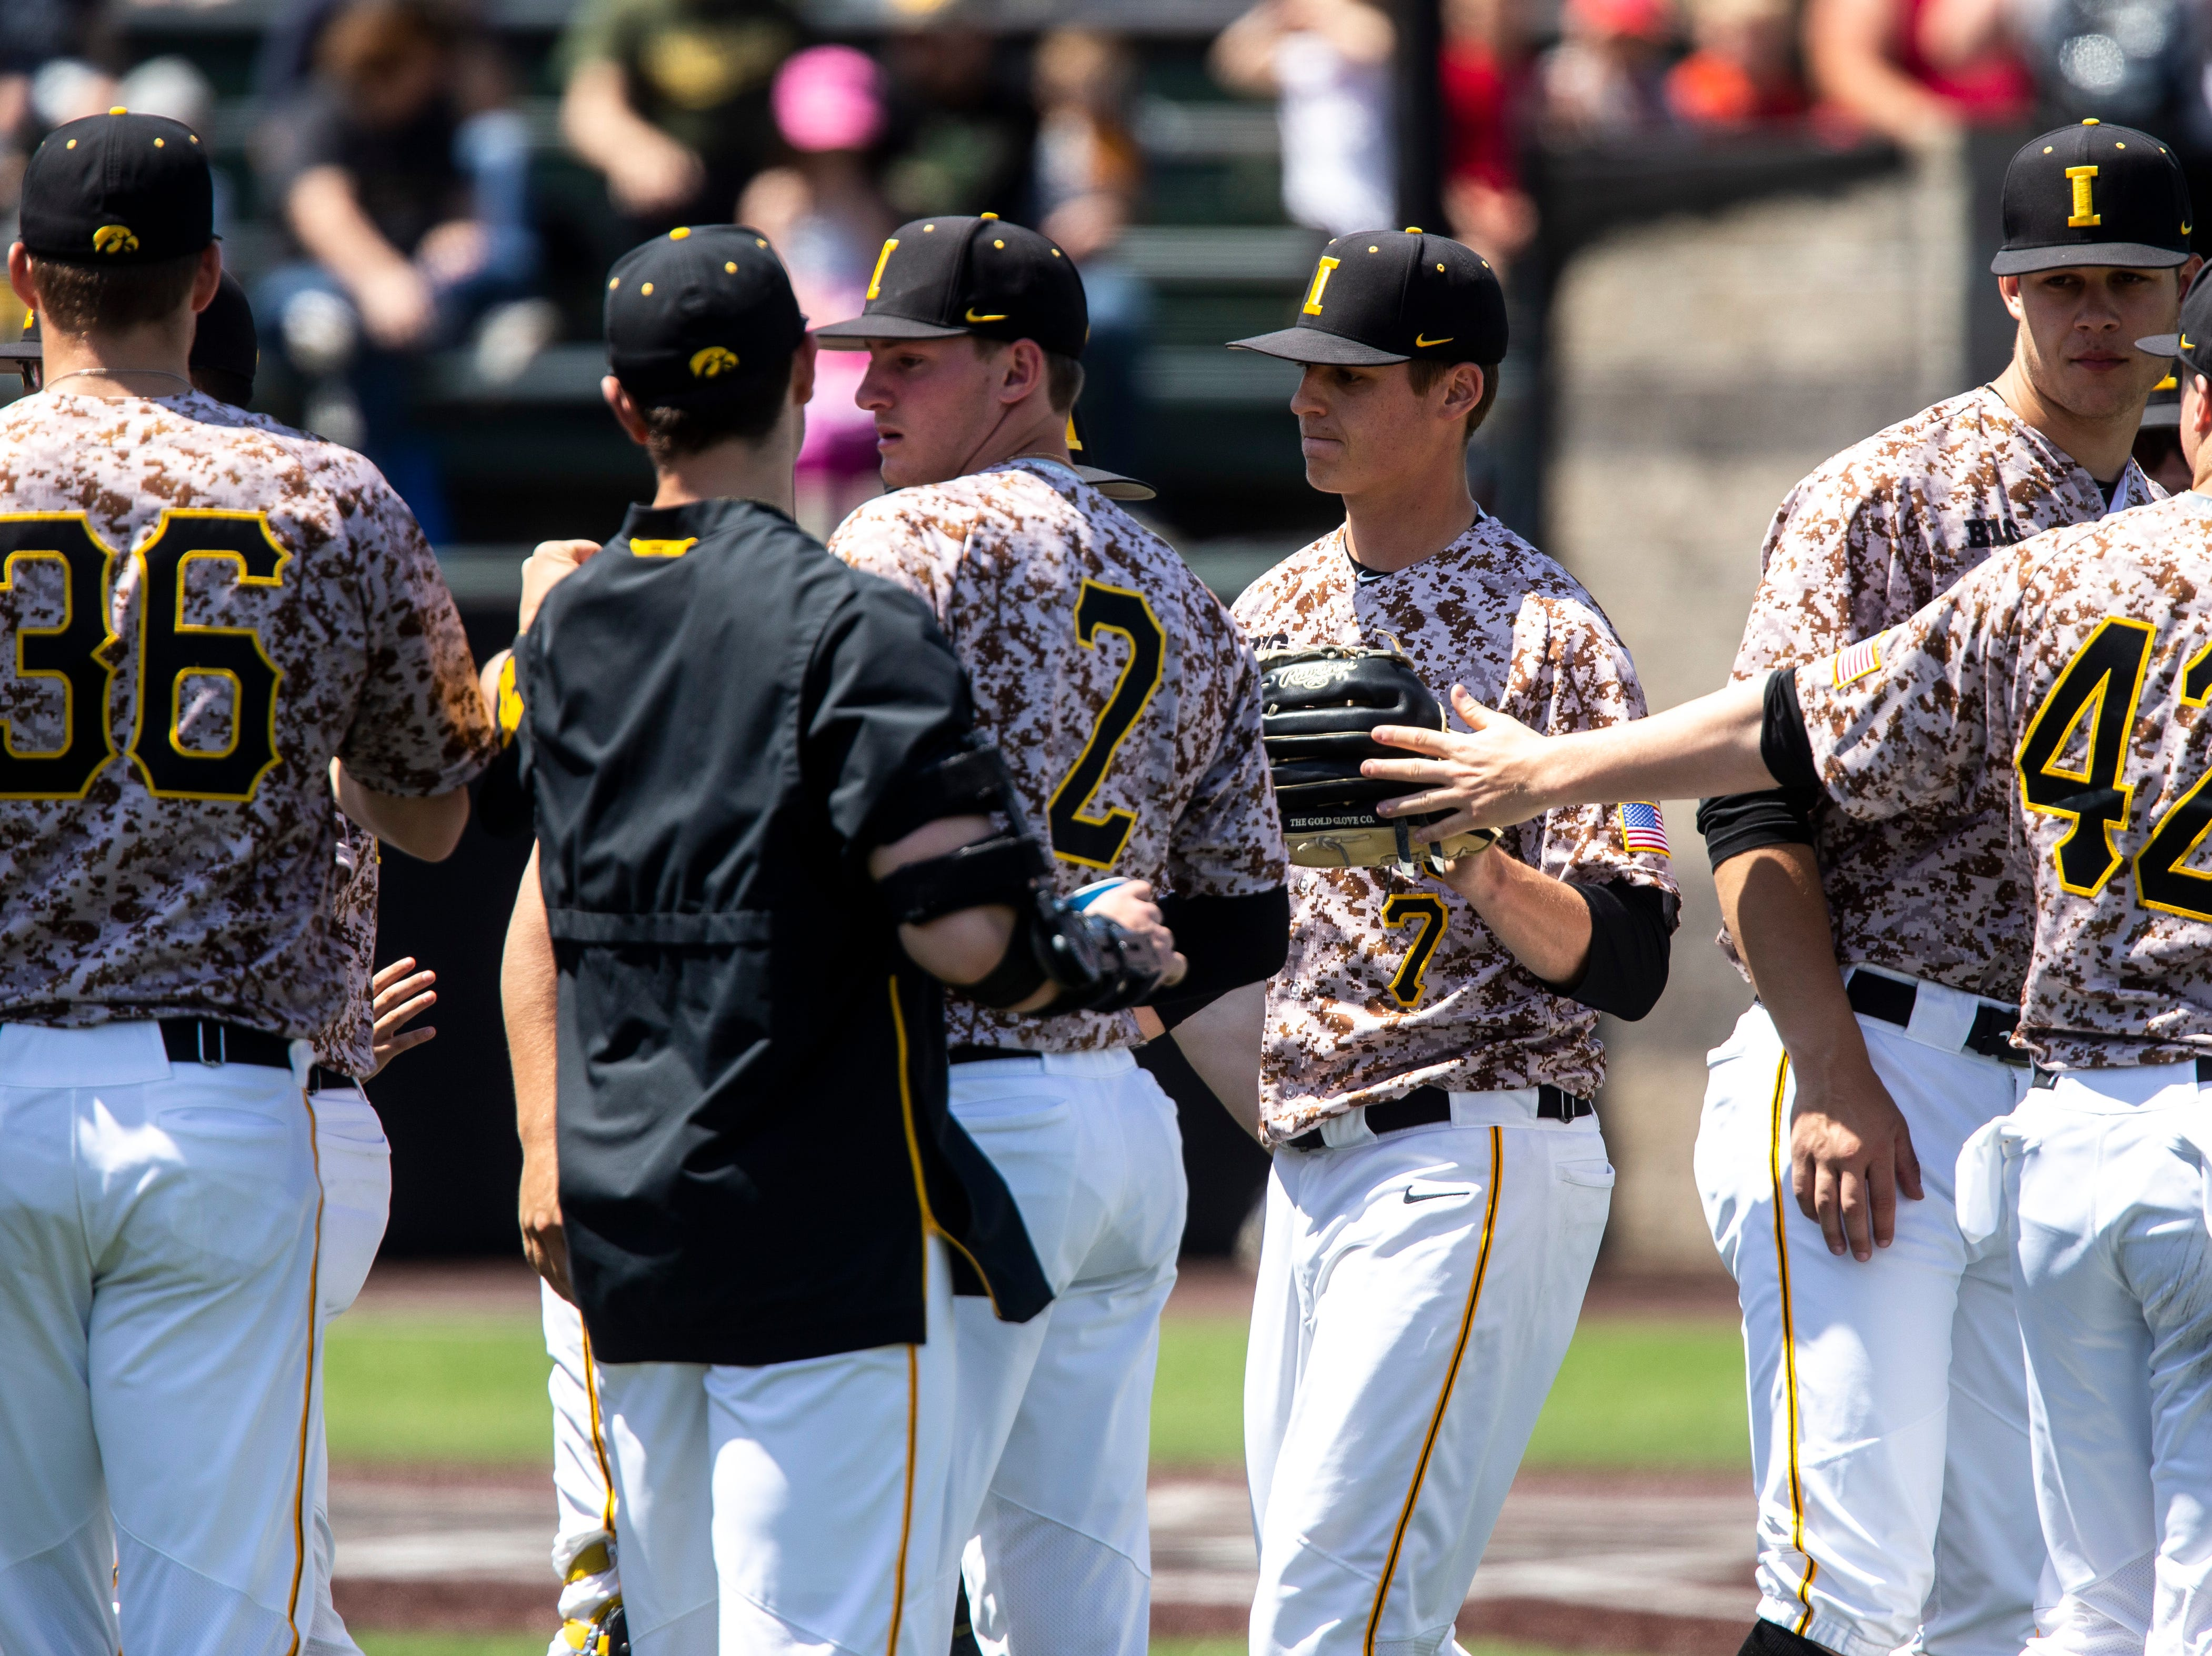 Iowa pitcher Grant Judkins (7) walks into the dugout during a NCAA non conference baseball game, Sunday, May 5, 2019, at Duane Banks Field in Iowa City, Iowa.